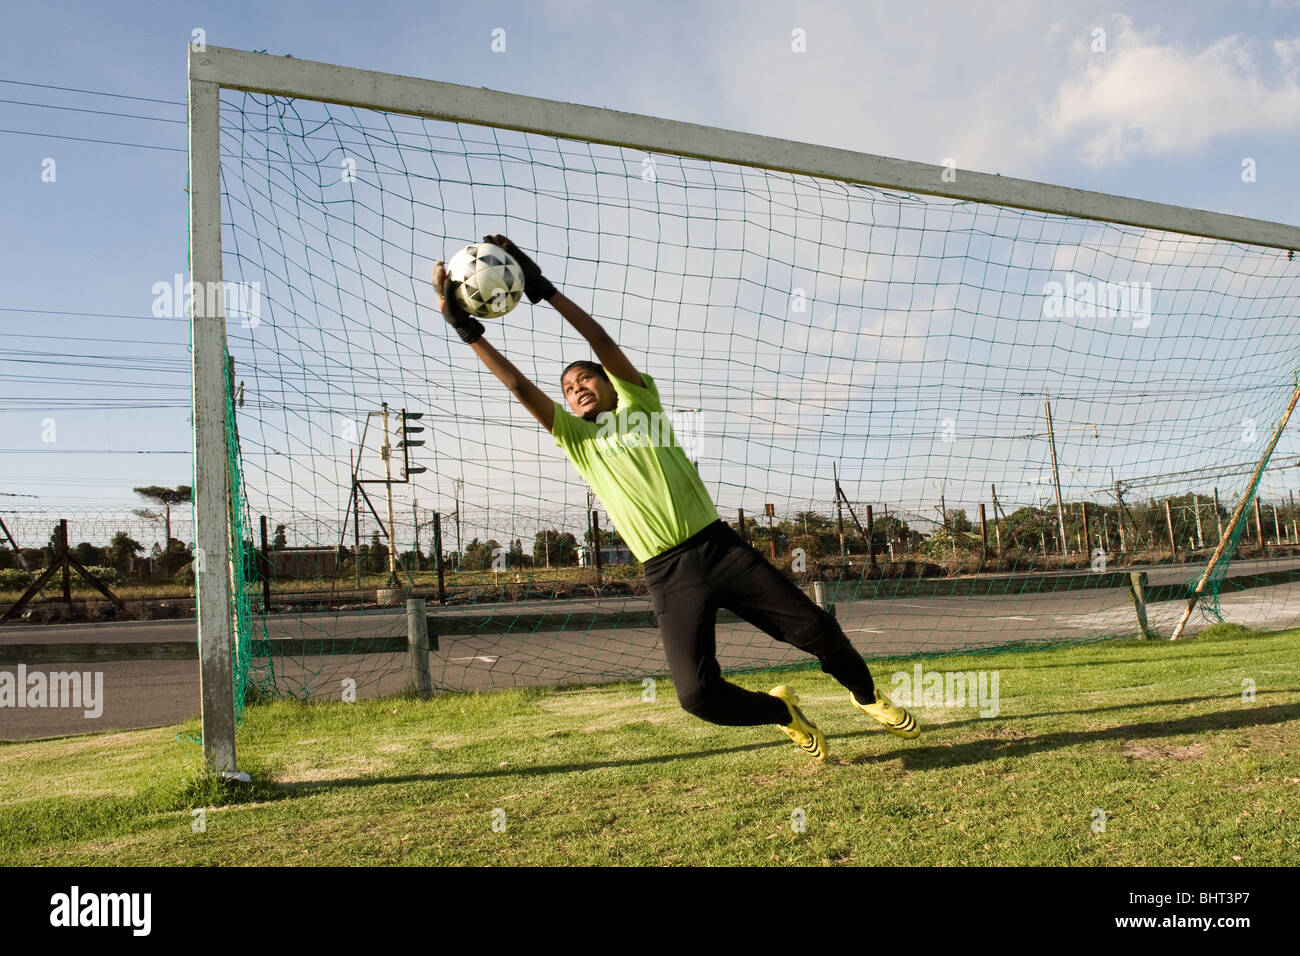 Goal keeper training at Old Mutual Football Academy, Cape Town, South Africa - Stock Image